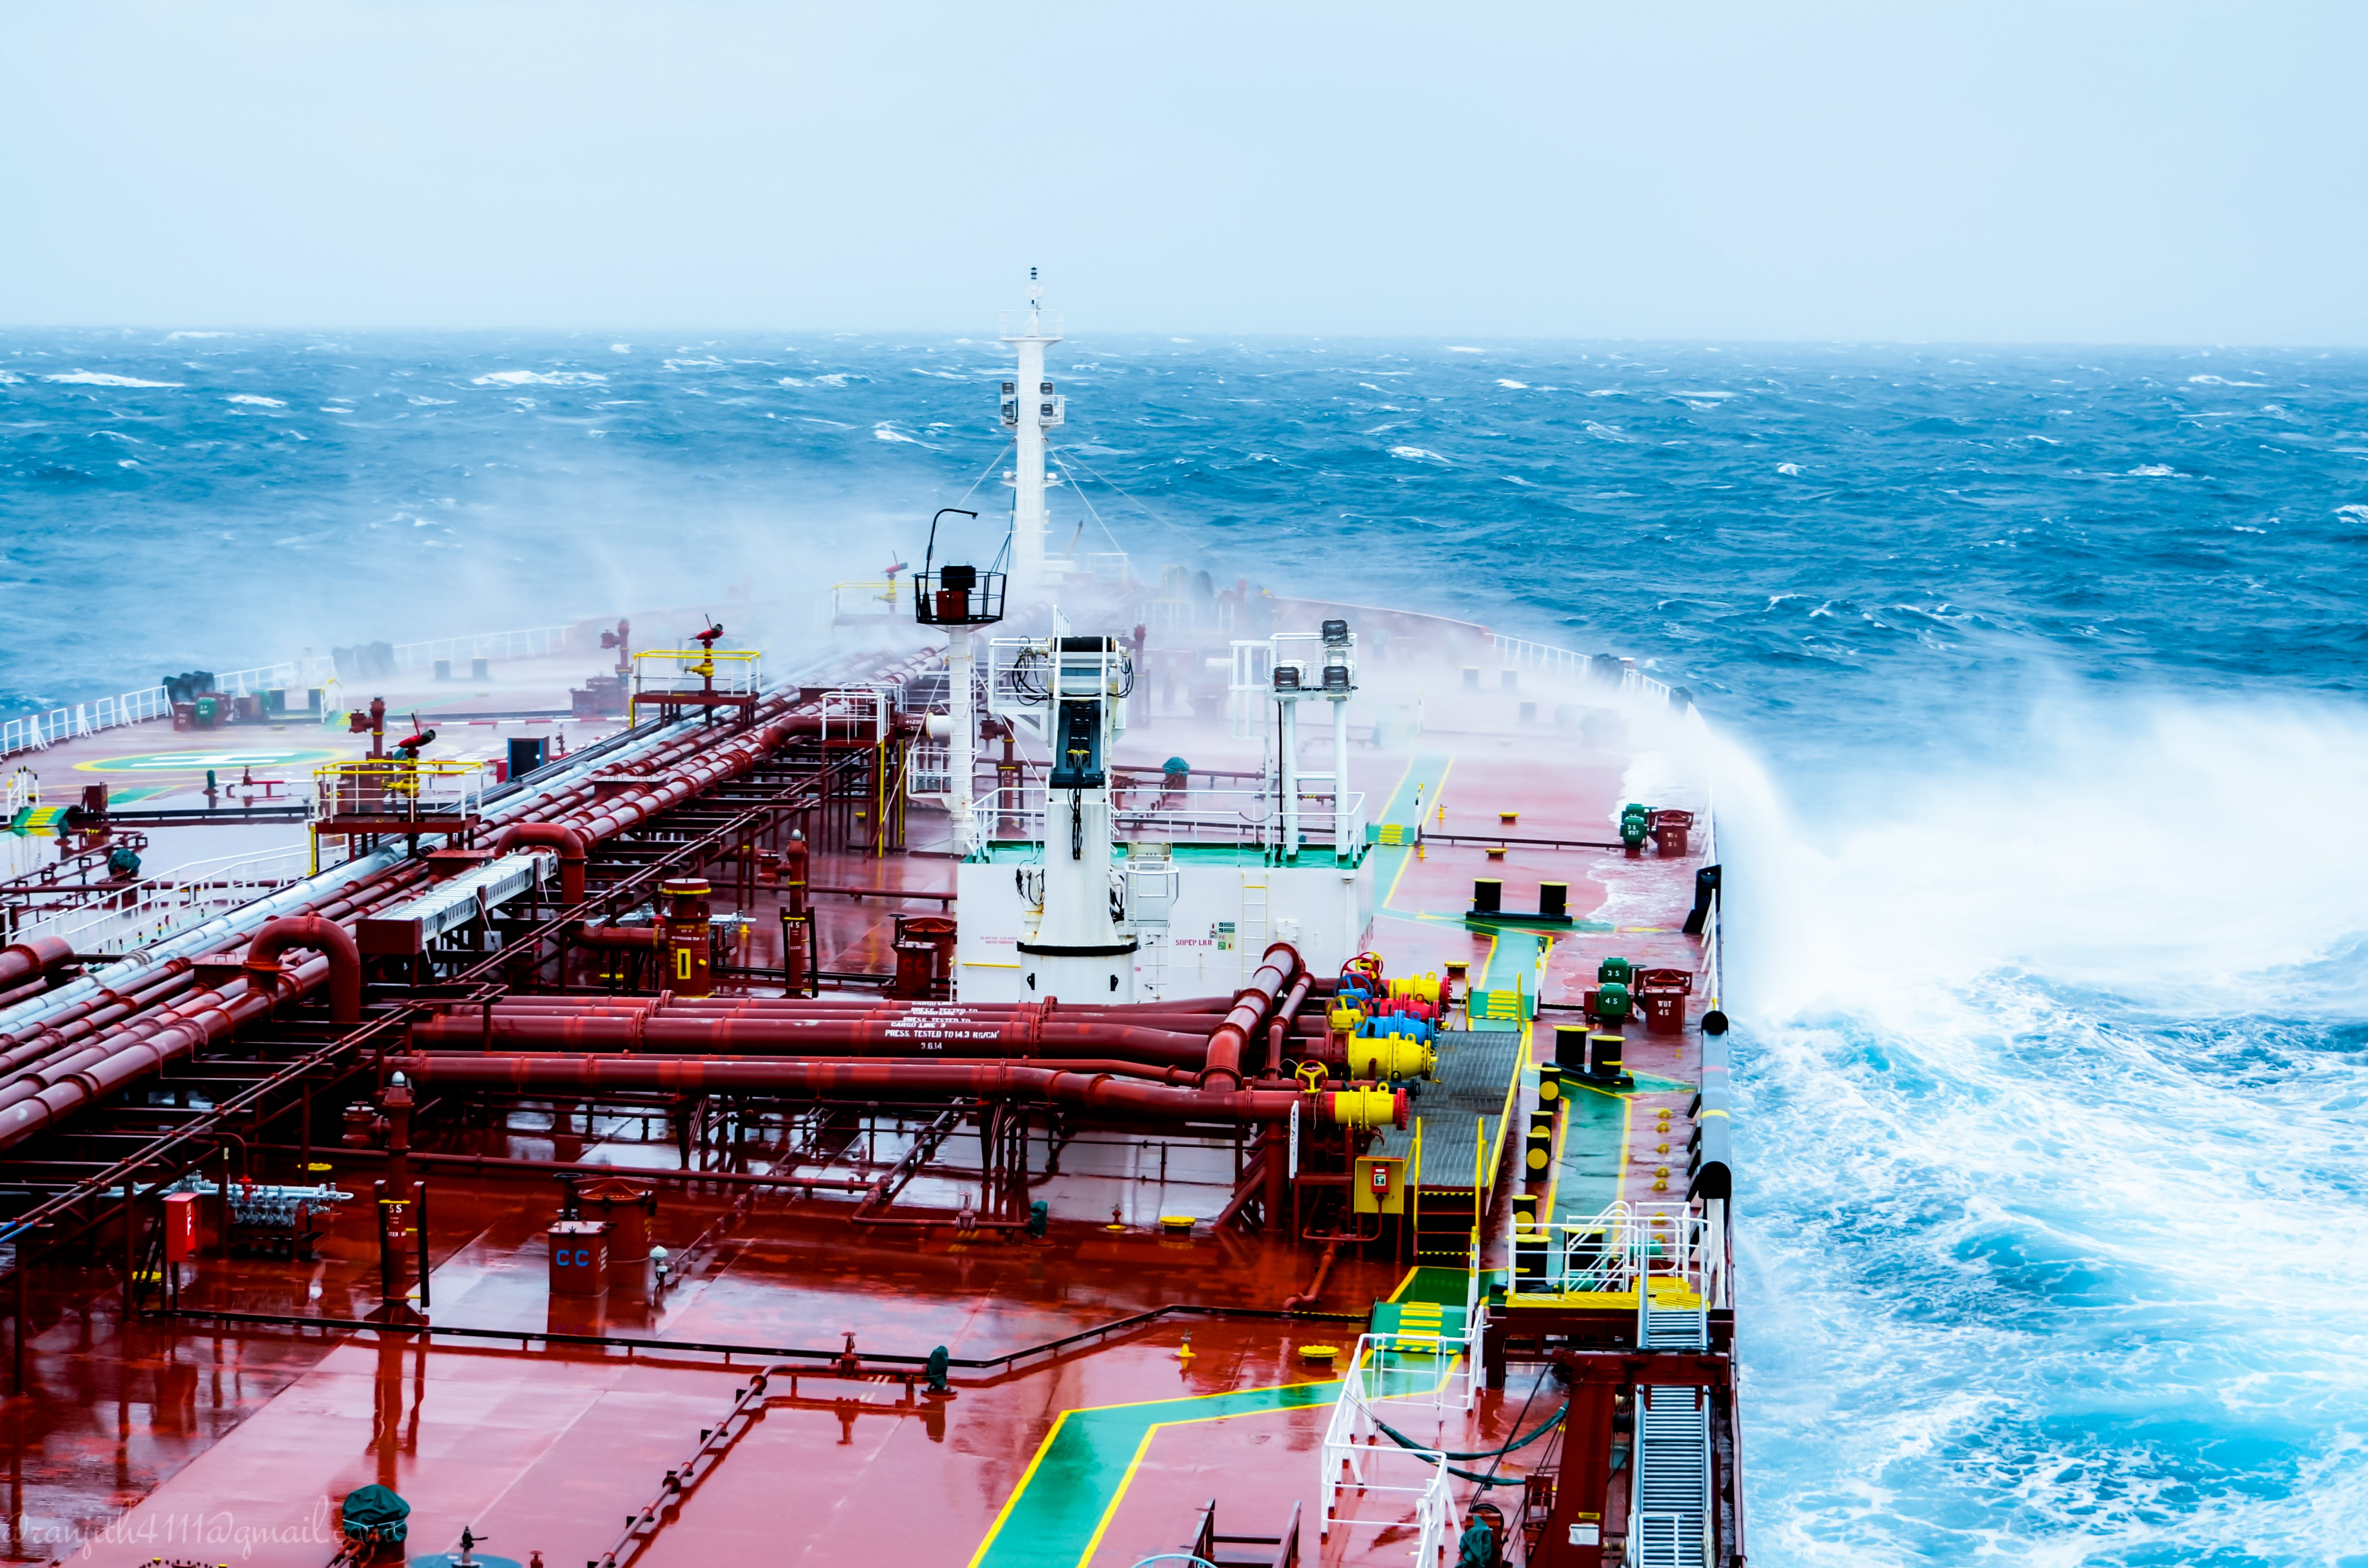 private sector participation in maritime industry Maritime sector66 environmental and social needs and are responsive to the needs of industry and increase private sector participation in the provision of.